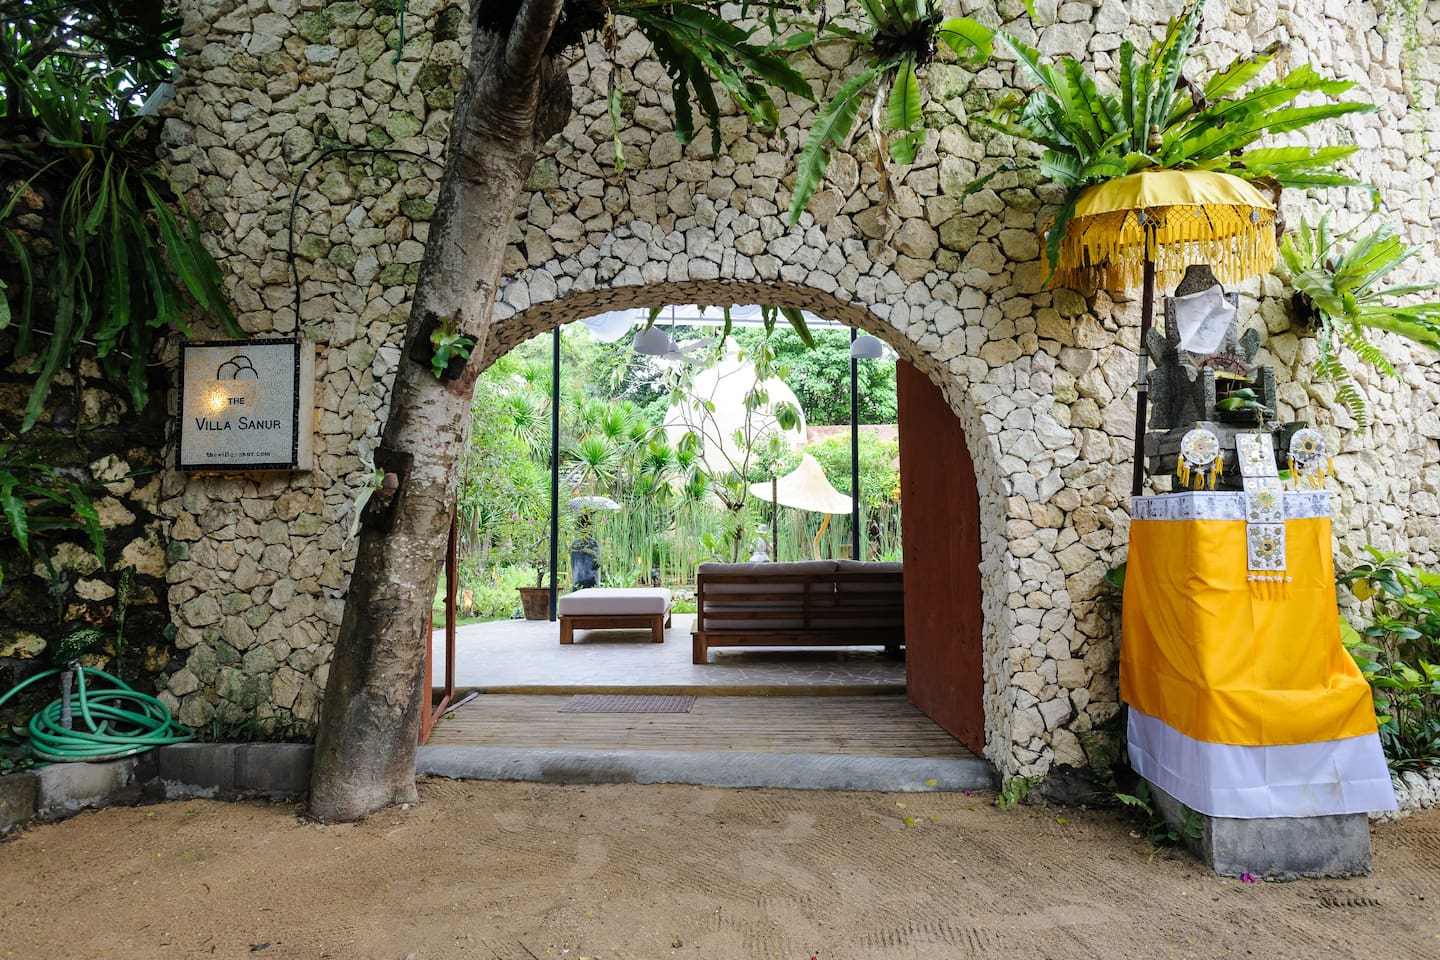 The entrance. At the end of a quiet shady lane is The Villa Sanur.